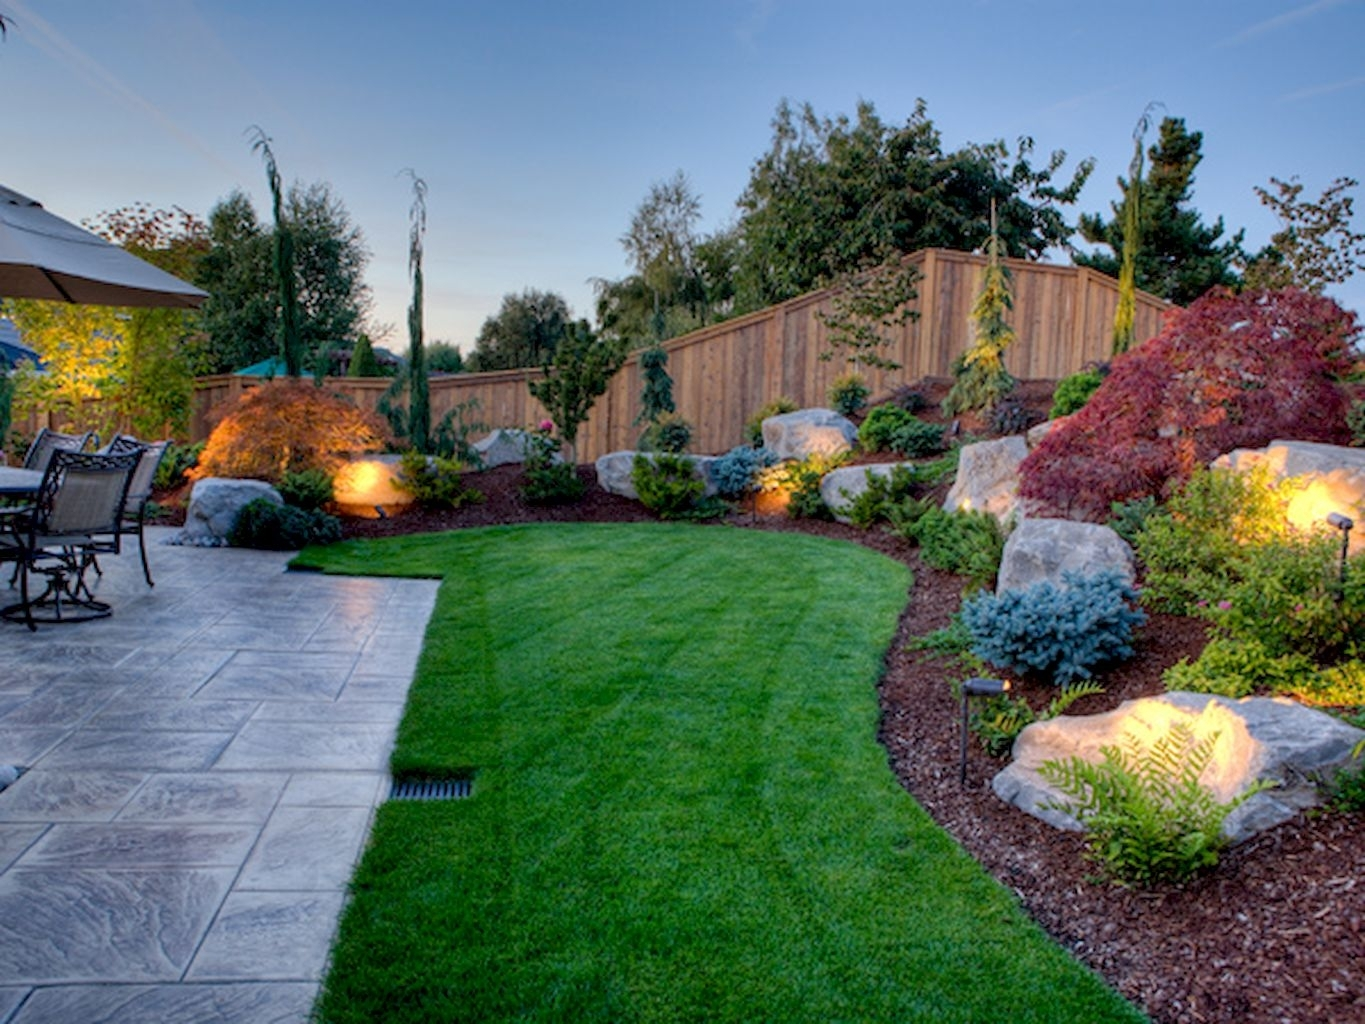 Image of: 40 Beautiful Front Yard Landscaping Ideas Yard Landscaping With Landscaped Yards Decorative Ideas Landscaped Yards